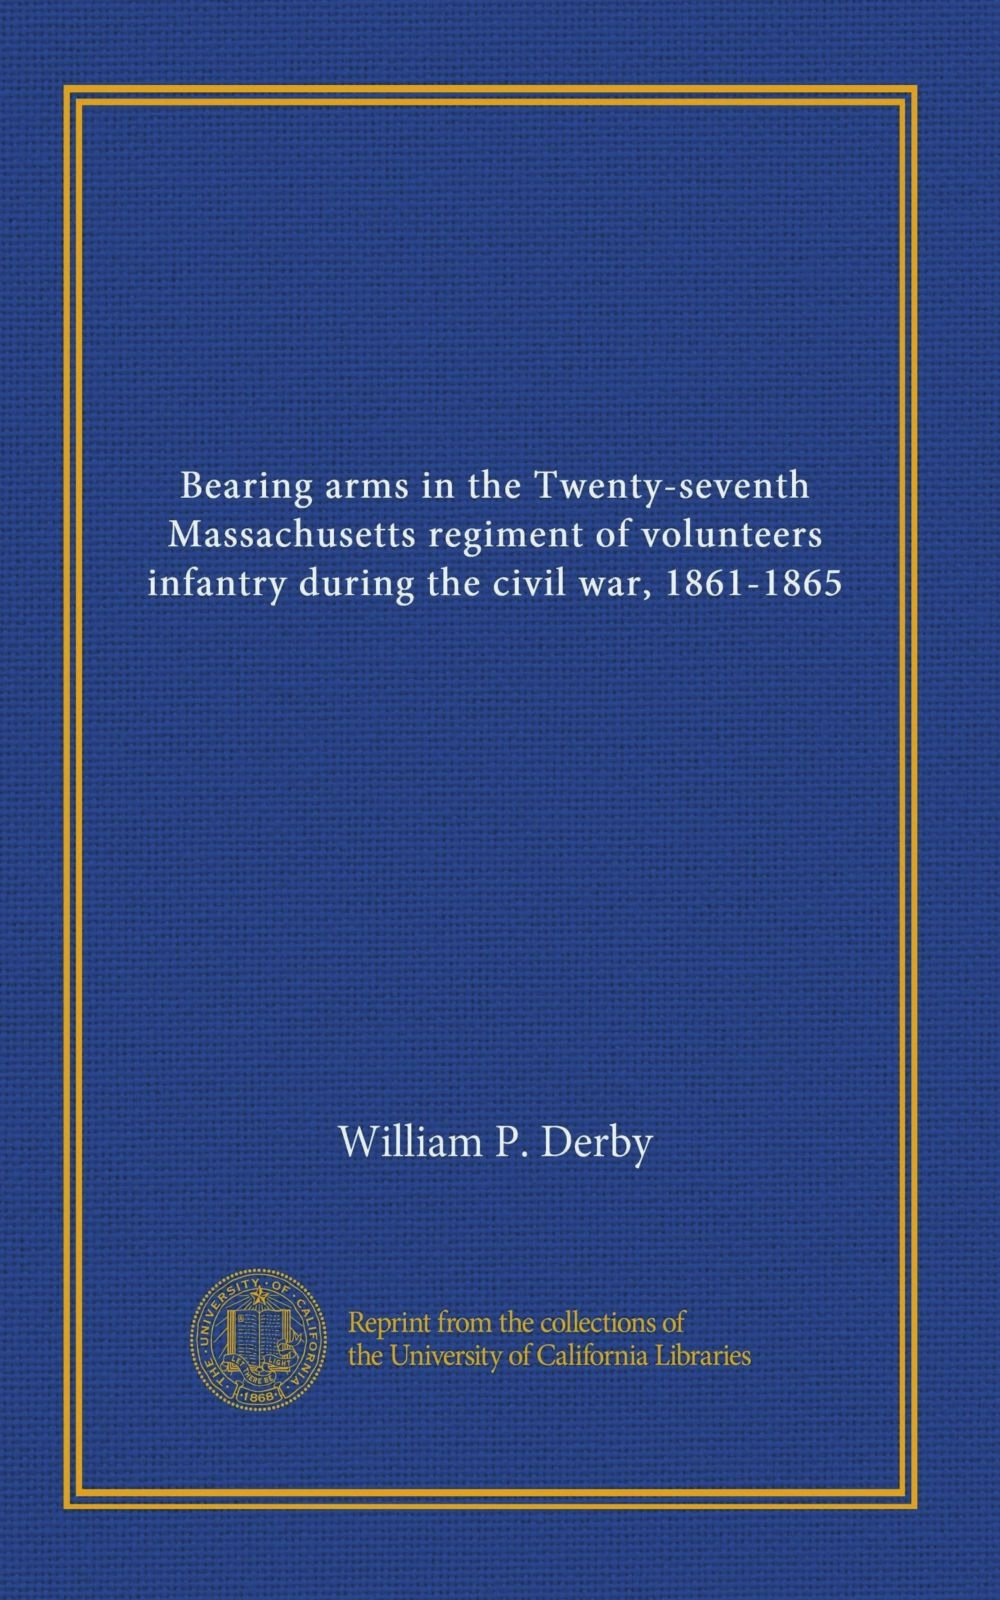 Bearing arms in the Twenty-seventh Massachusetts regiment of volunteers infantry during the civil war, 1861-1865 ebook